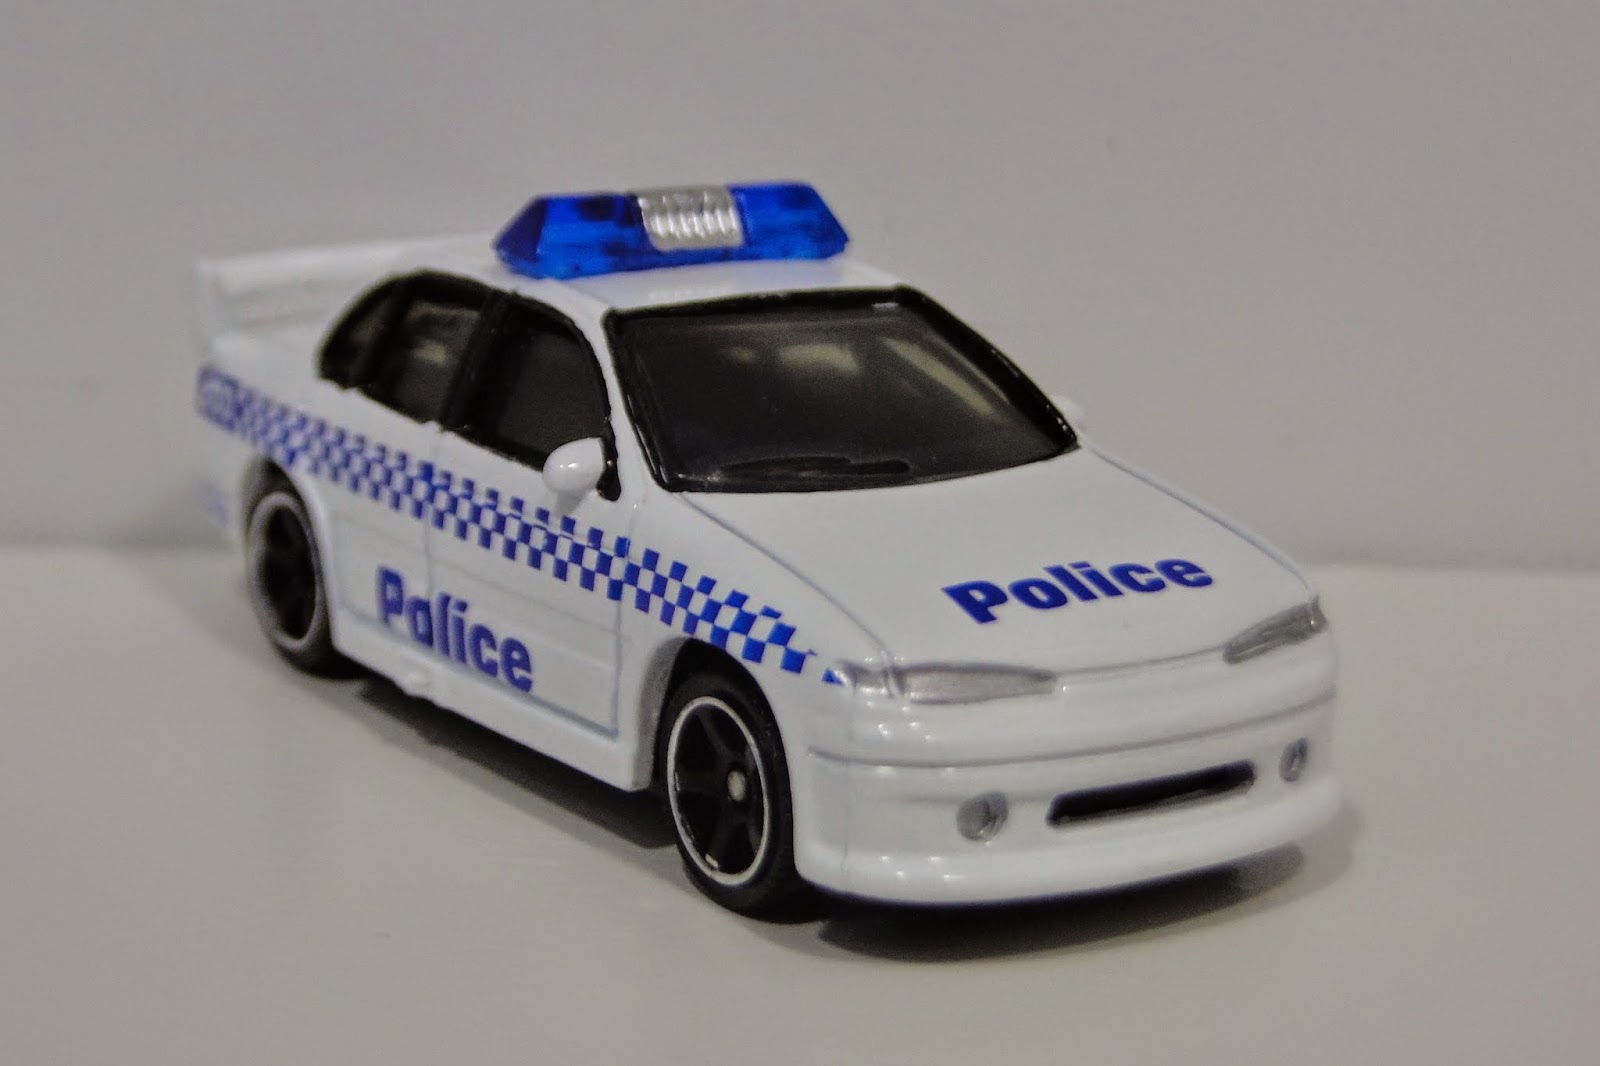 Models - Matchbox - Ford Police Interceptor - Matchbox ...